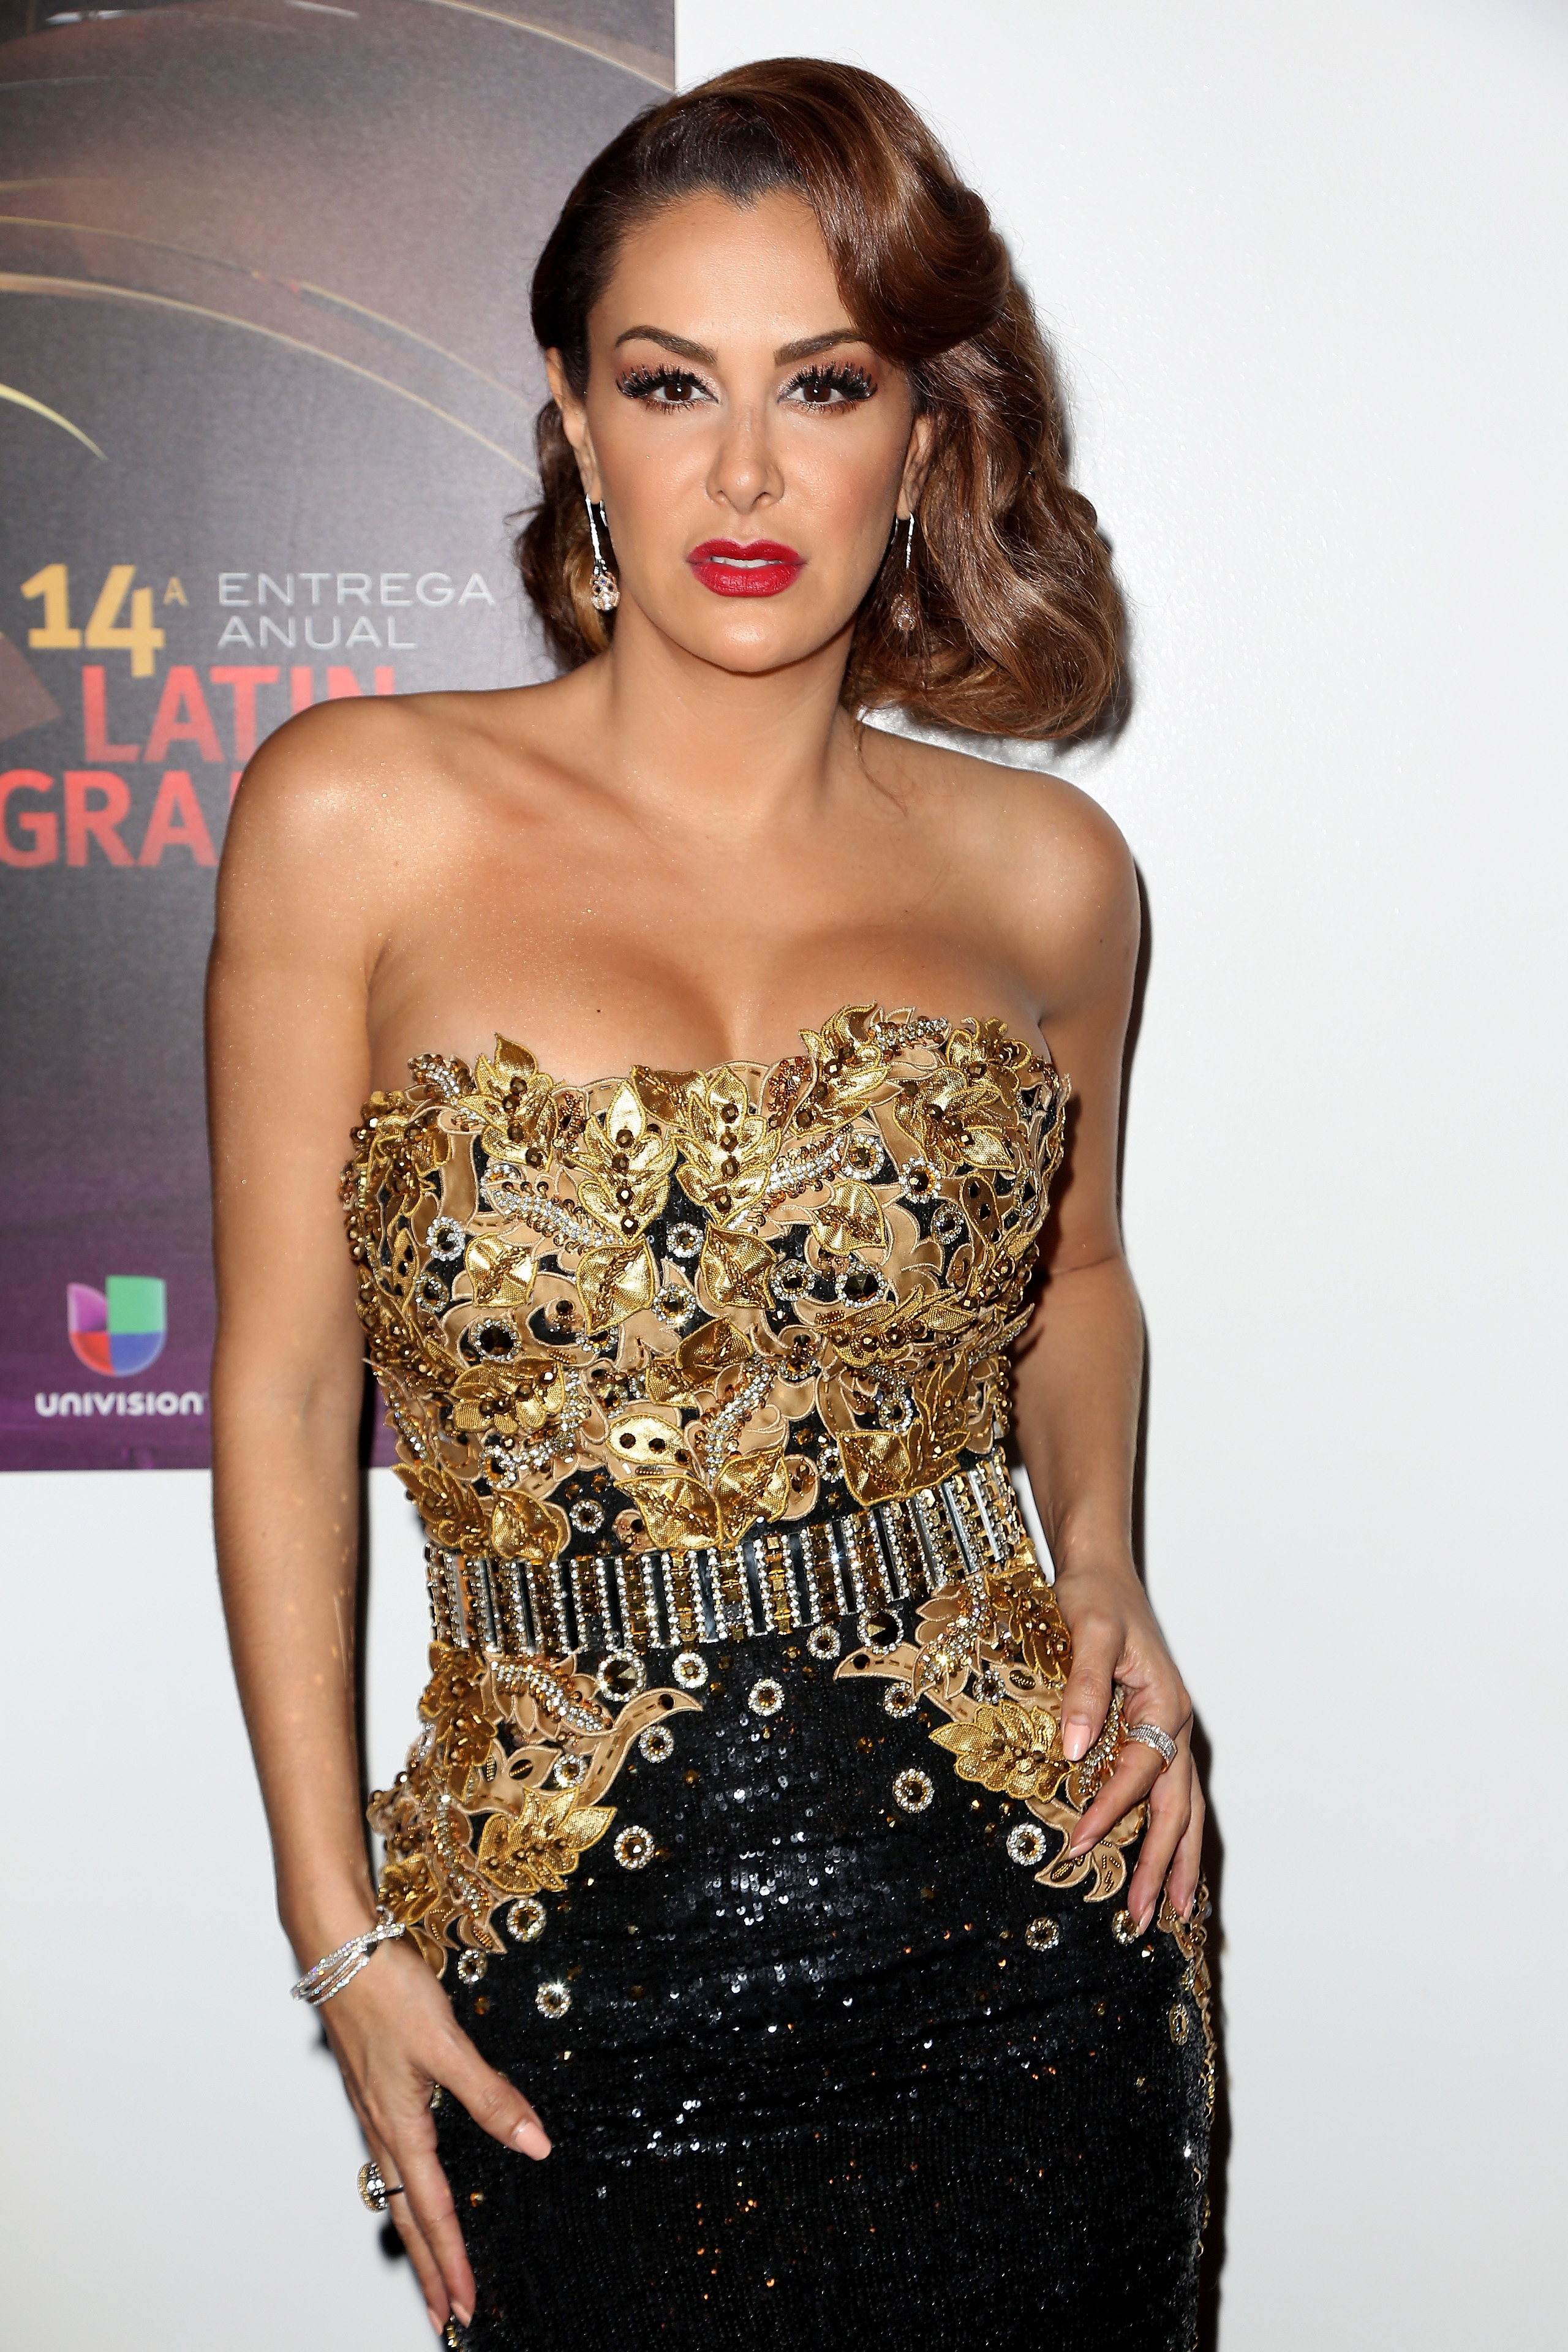 The 14th Annual Latin GRAMMY Awards - Red Carpet